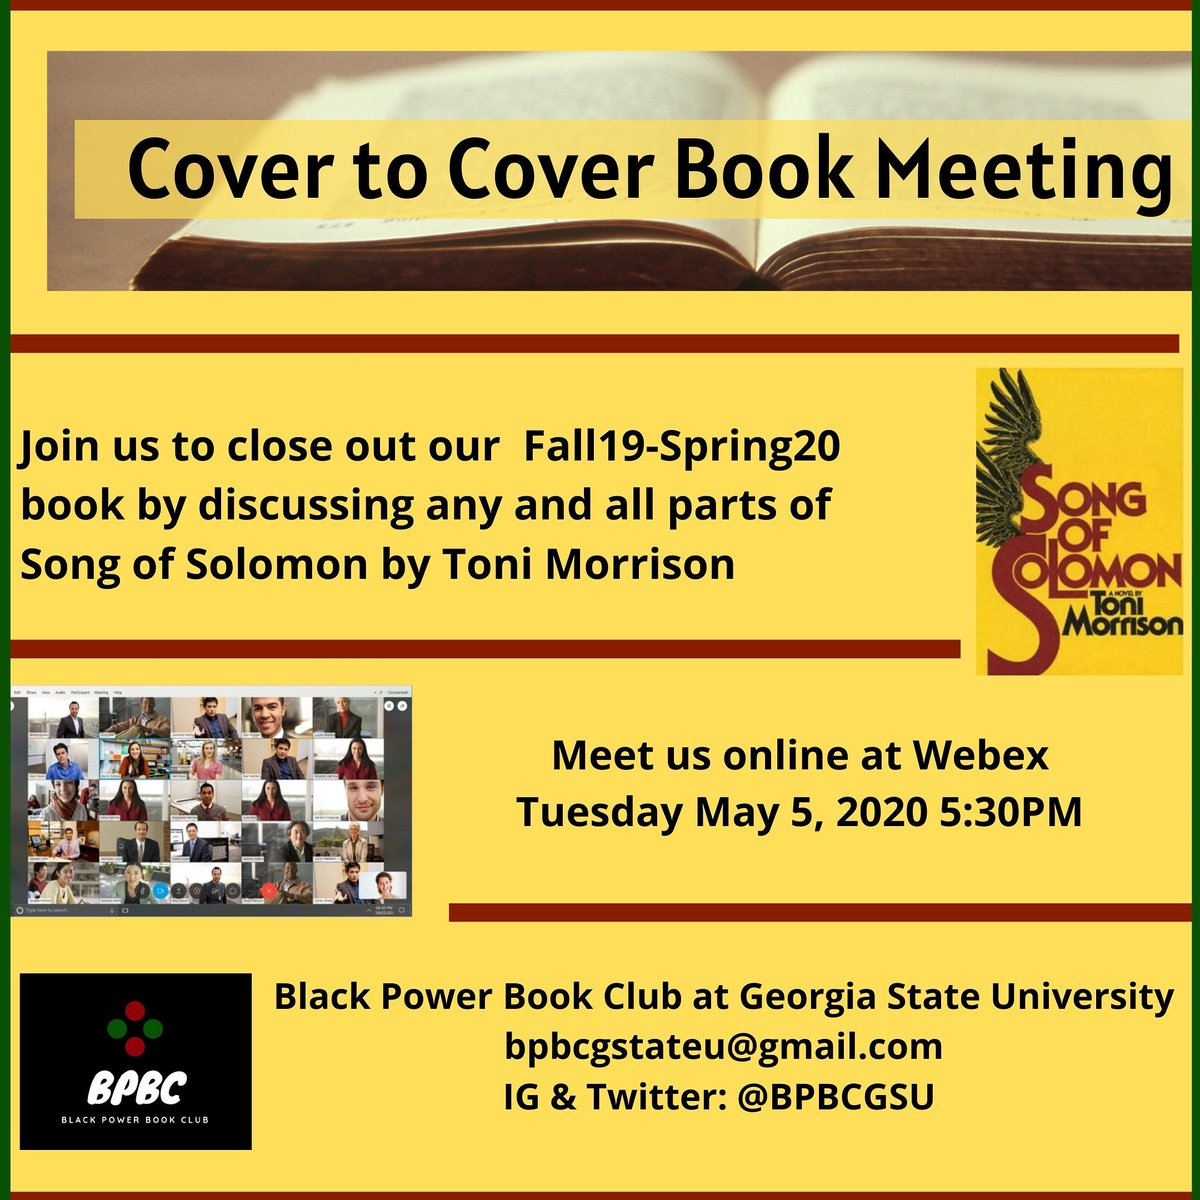 Join Black Power Book Club to discuss Song of Solomon by #ToniMorrison !   All #GSU students have a free Webex account. DM us for meeting info!   #GeorgiaStateUniversity  #GSU21 #GSU22 #GSU23 #GSU24 #Atlanta #ATL #College  #CollegeLife https://t.co/6MG7f2EvQf